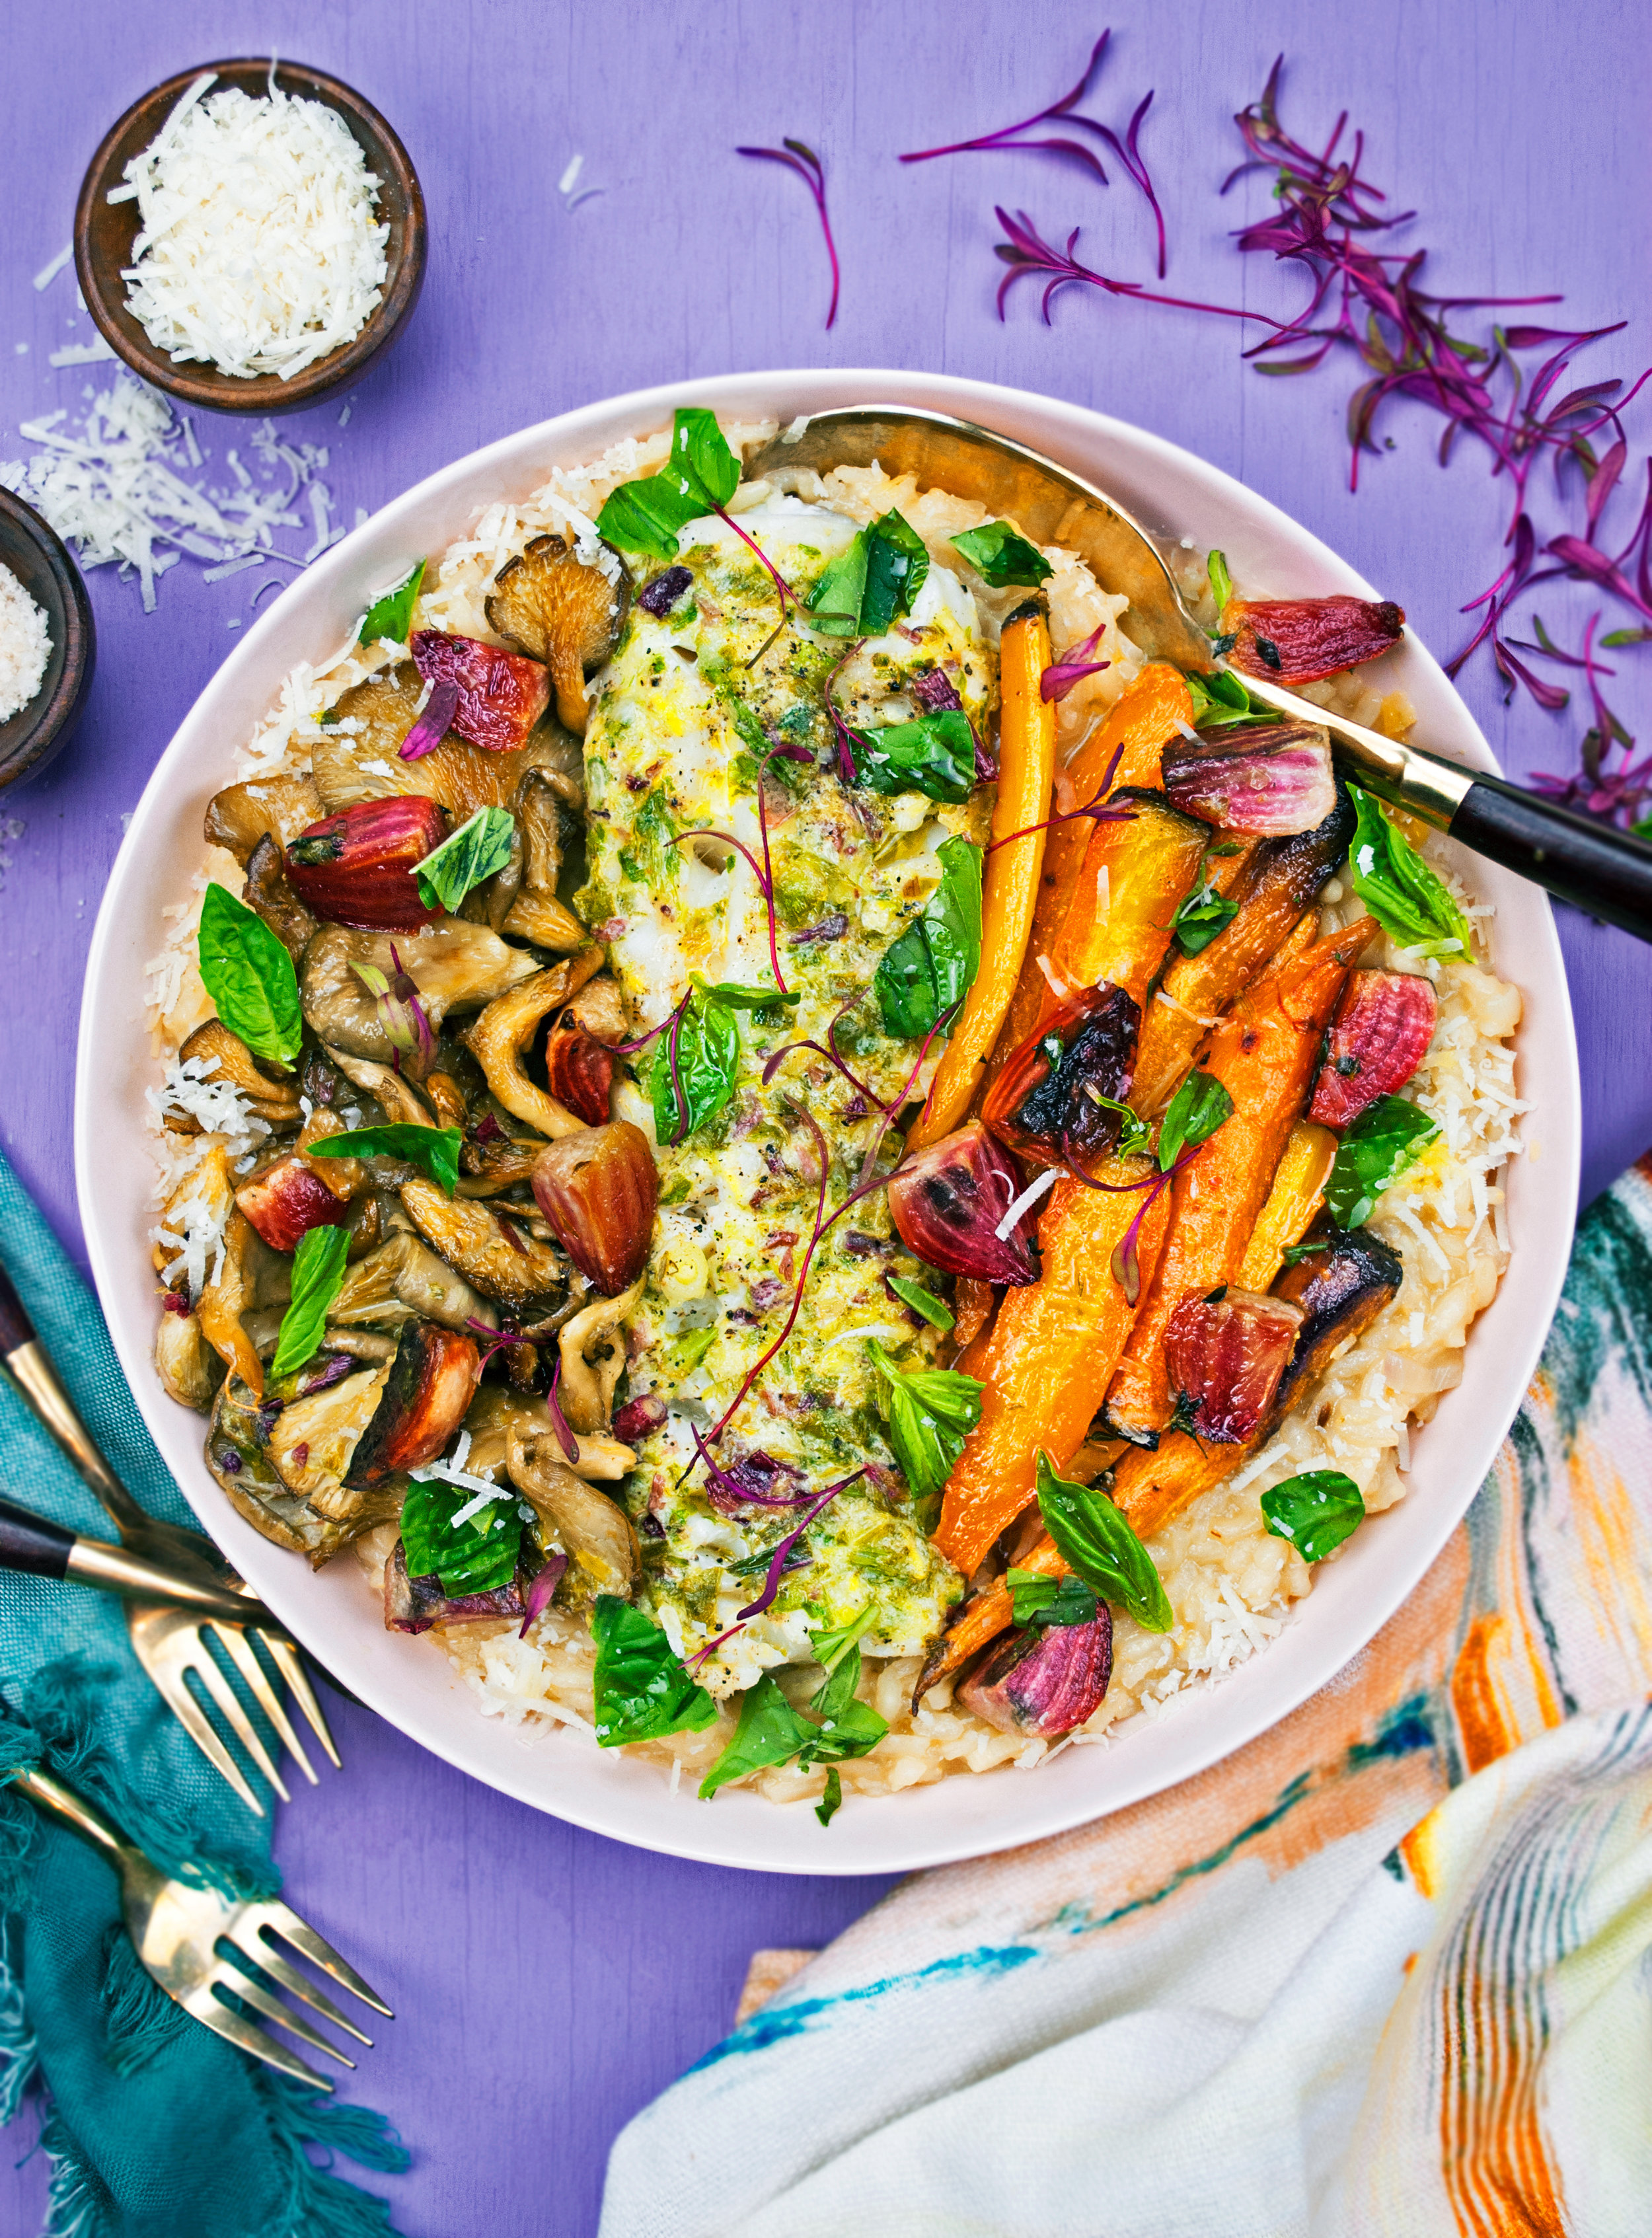 cod risotto 1 high res.jpg